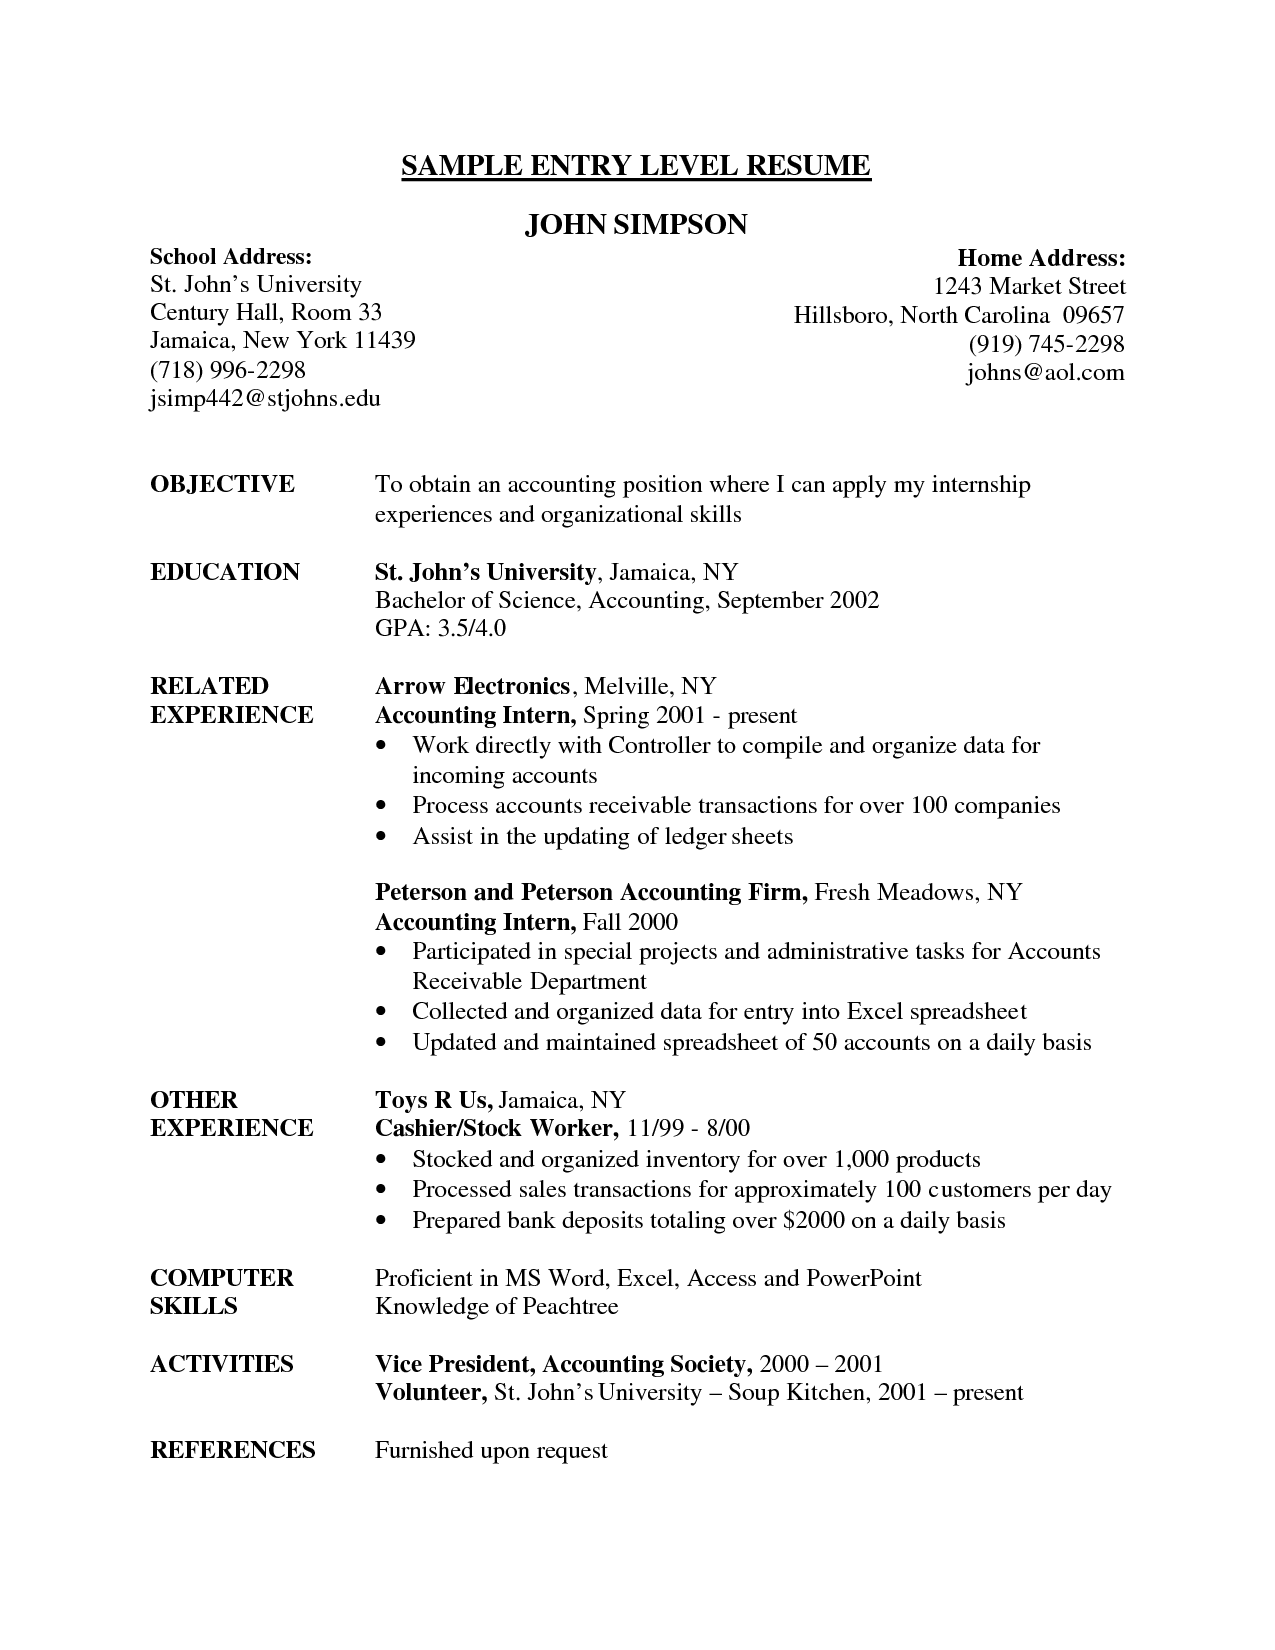 Example Of Resume Profile Entry Level - http://www.resumecareer.info ...